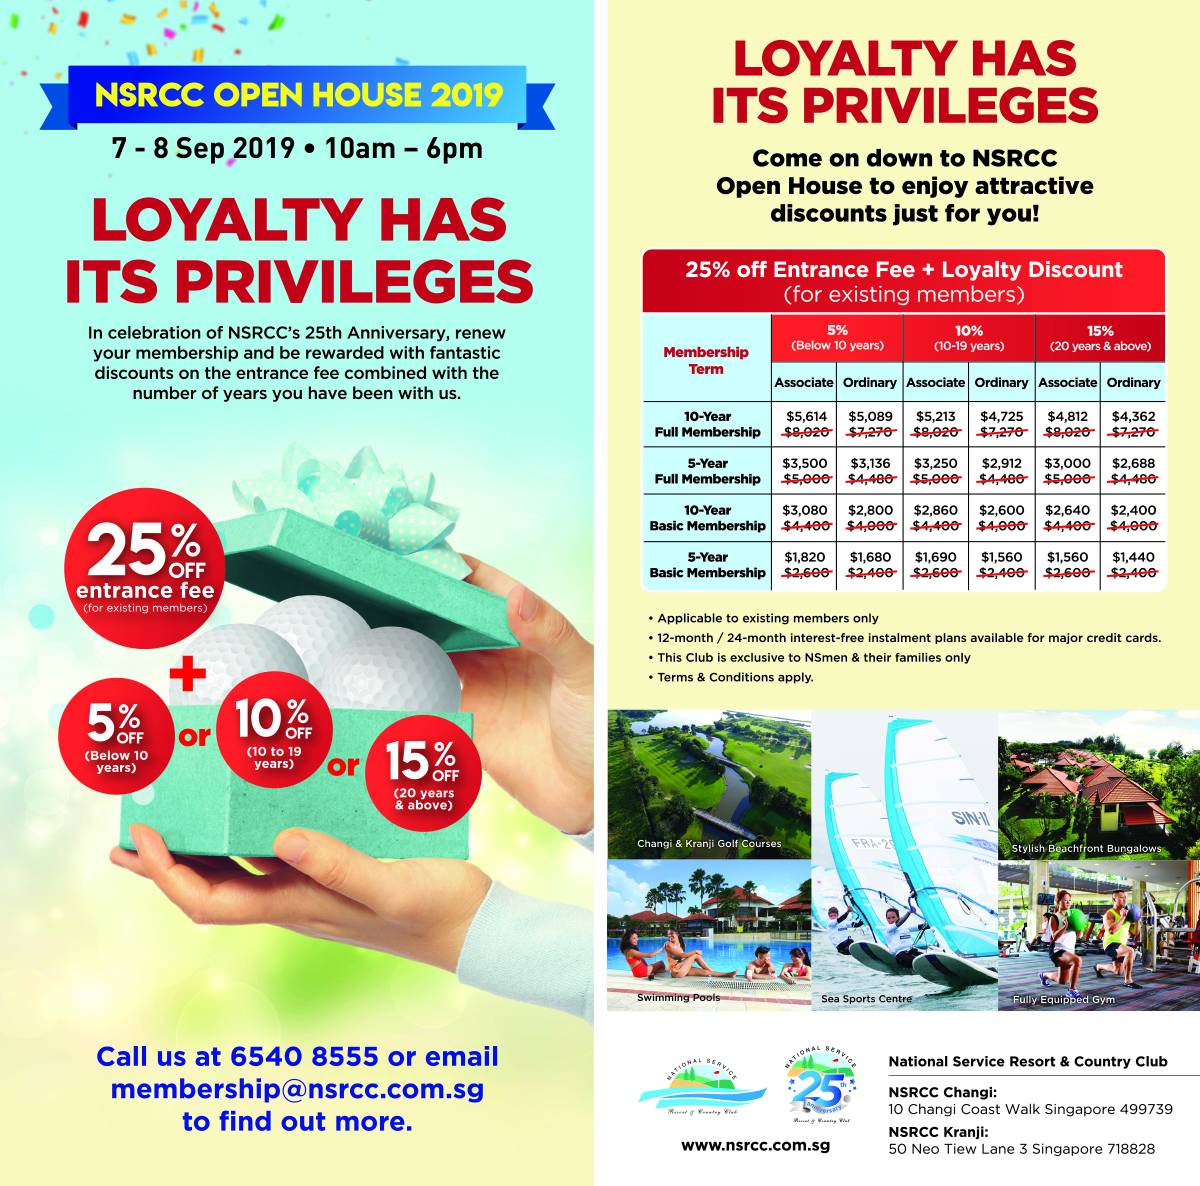 Golf Course Singapore and Country Club Promotions| NSRCC